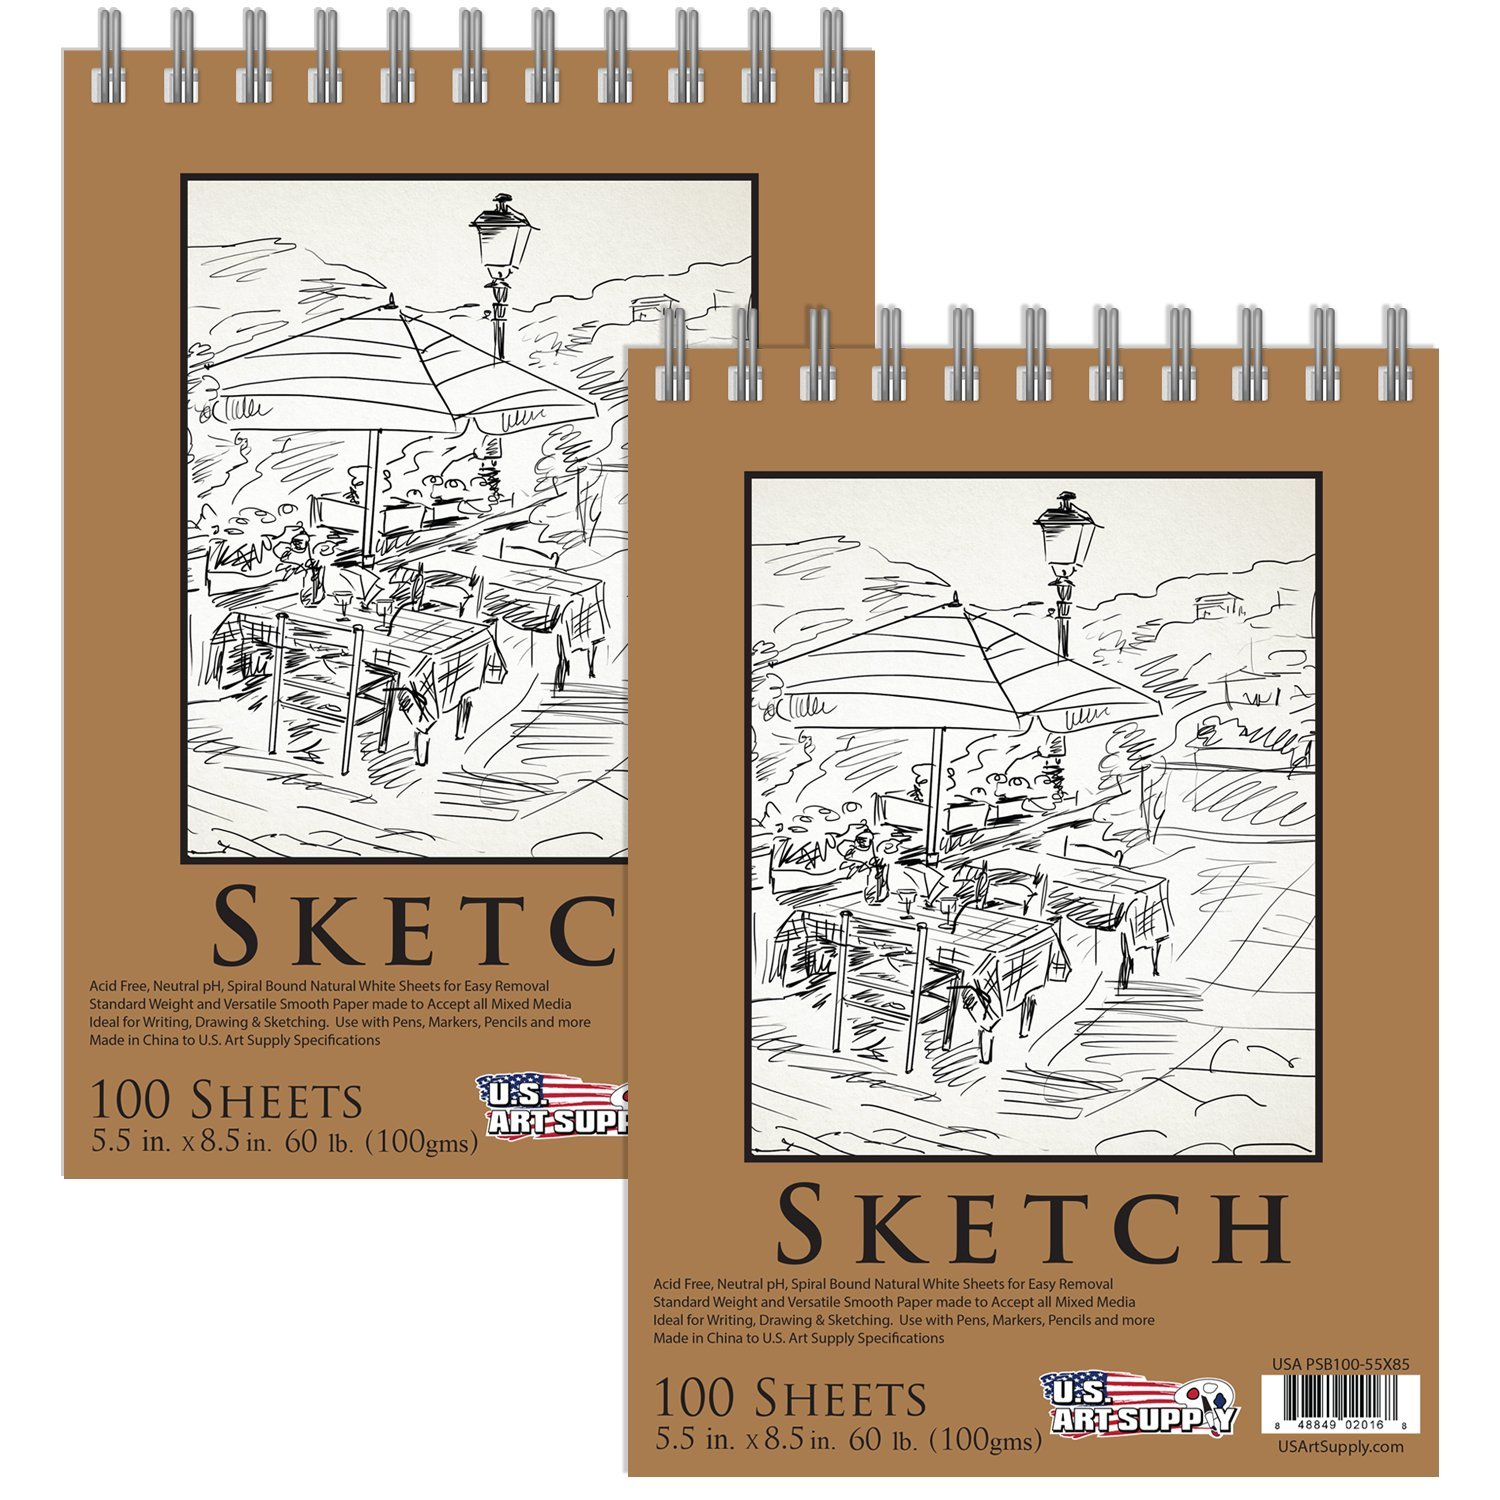 Sketch pads. #artsupplies #sketching